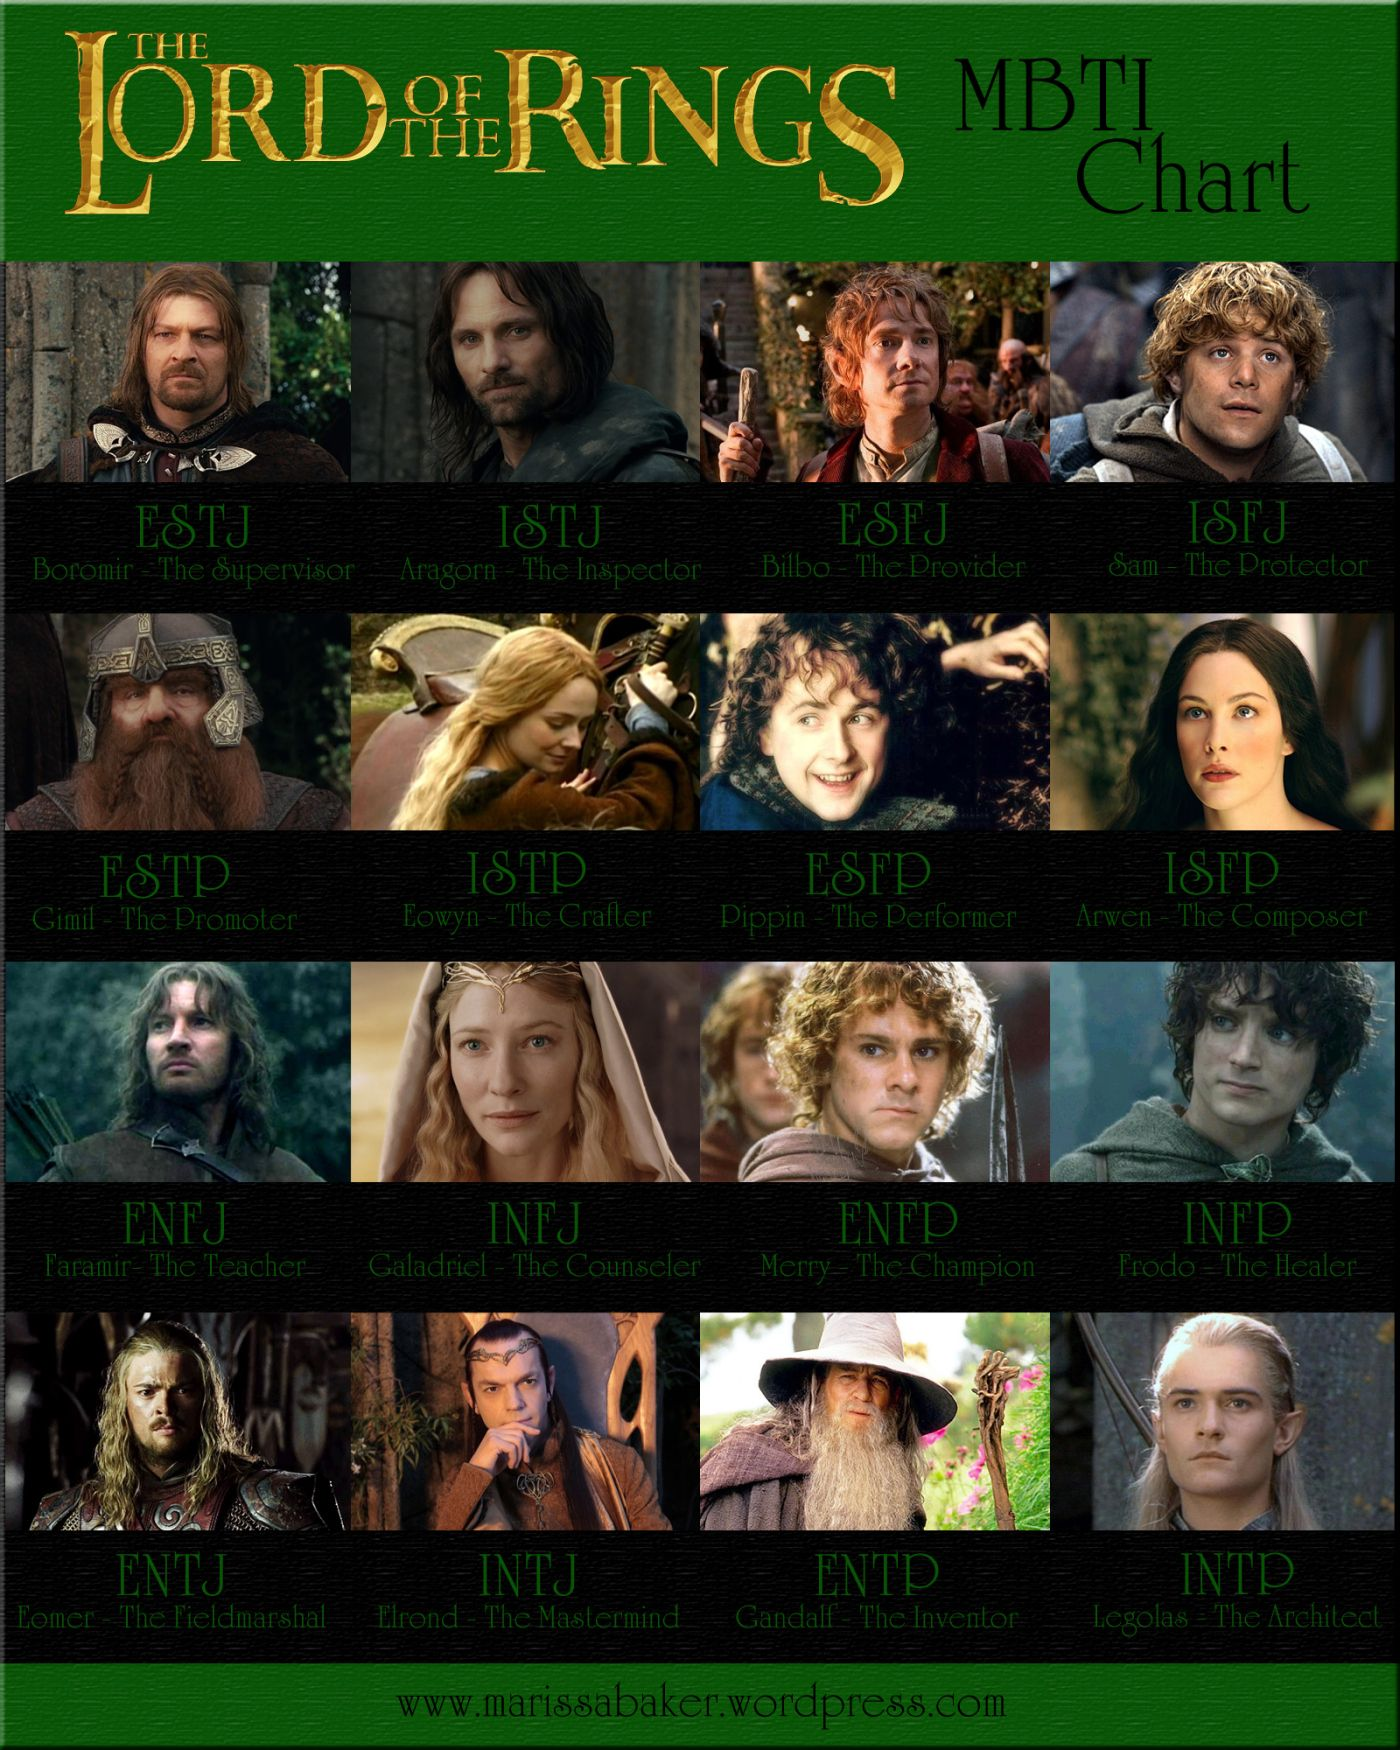 Lord of the Rings MBTI Chart. Find your Myers-Briggs type ...